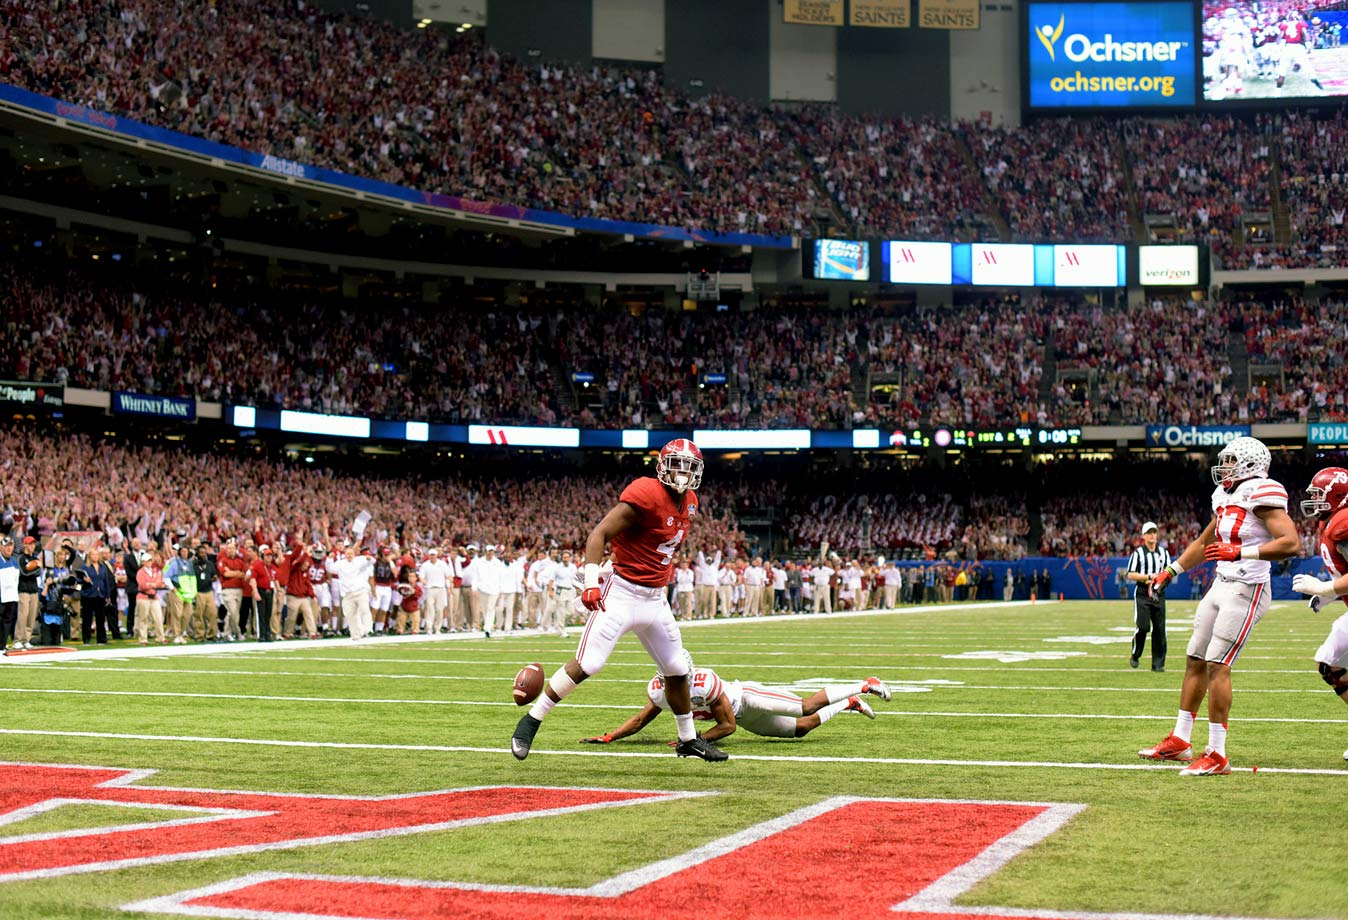 T.J. Yeldon scores a 2-yard touchdown run that put Alabama up 21-6 about midway through the second quarter.